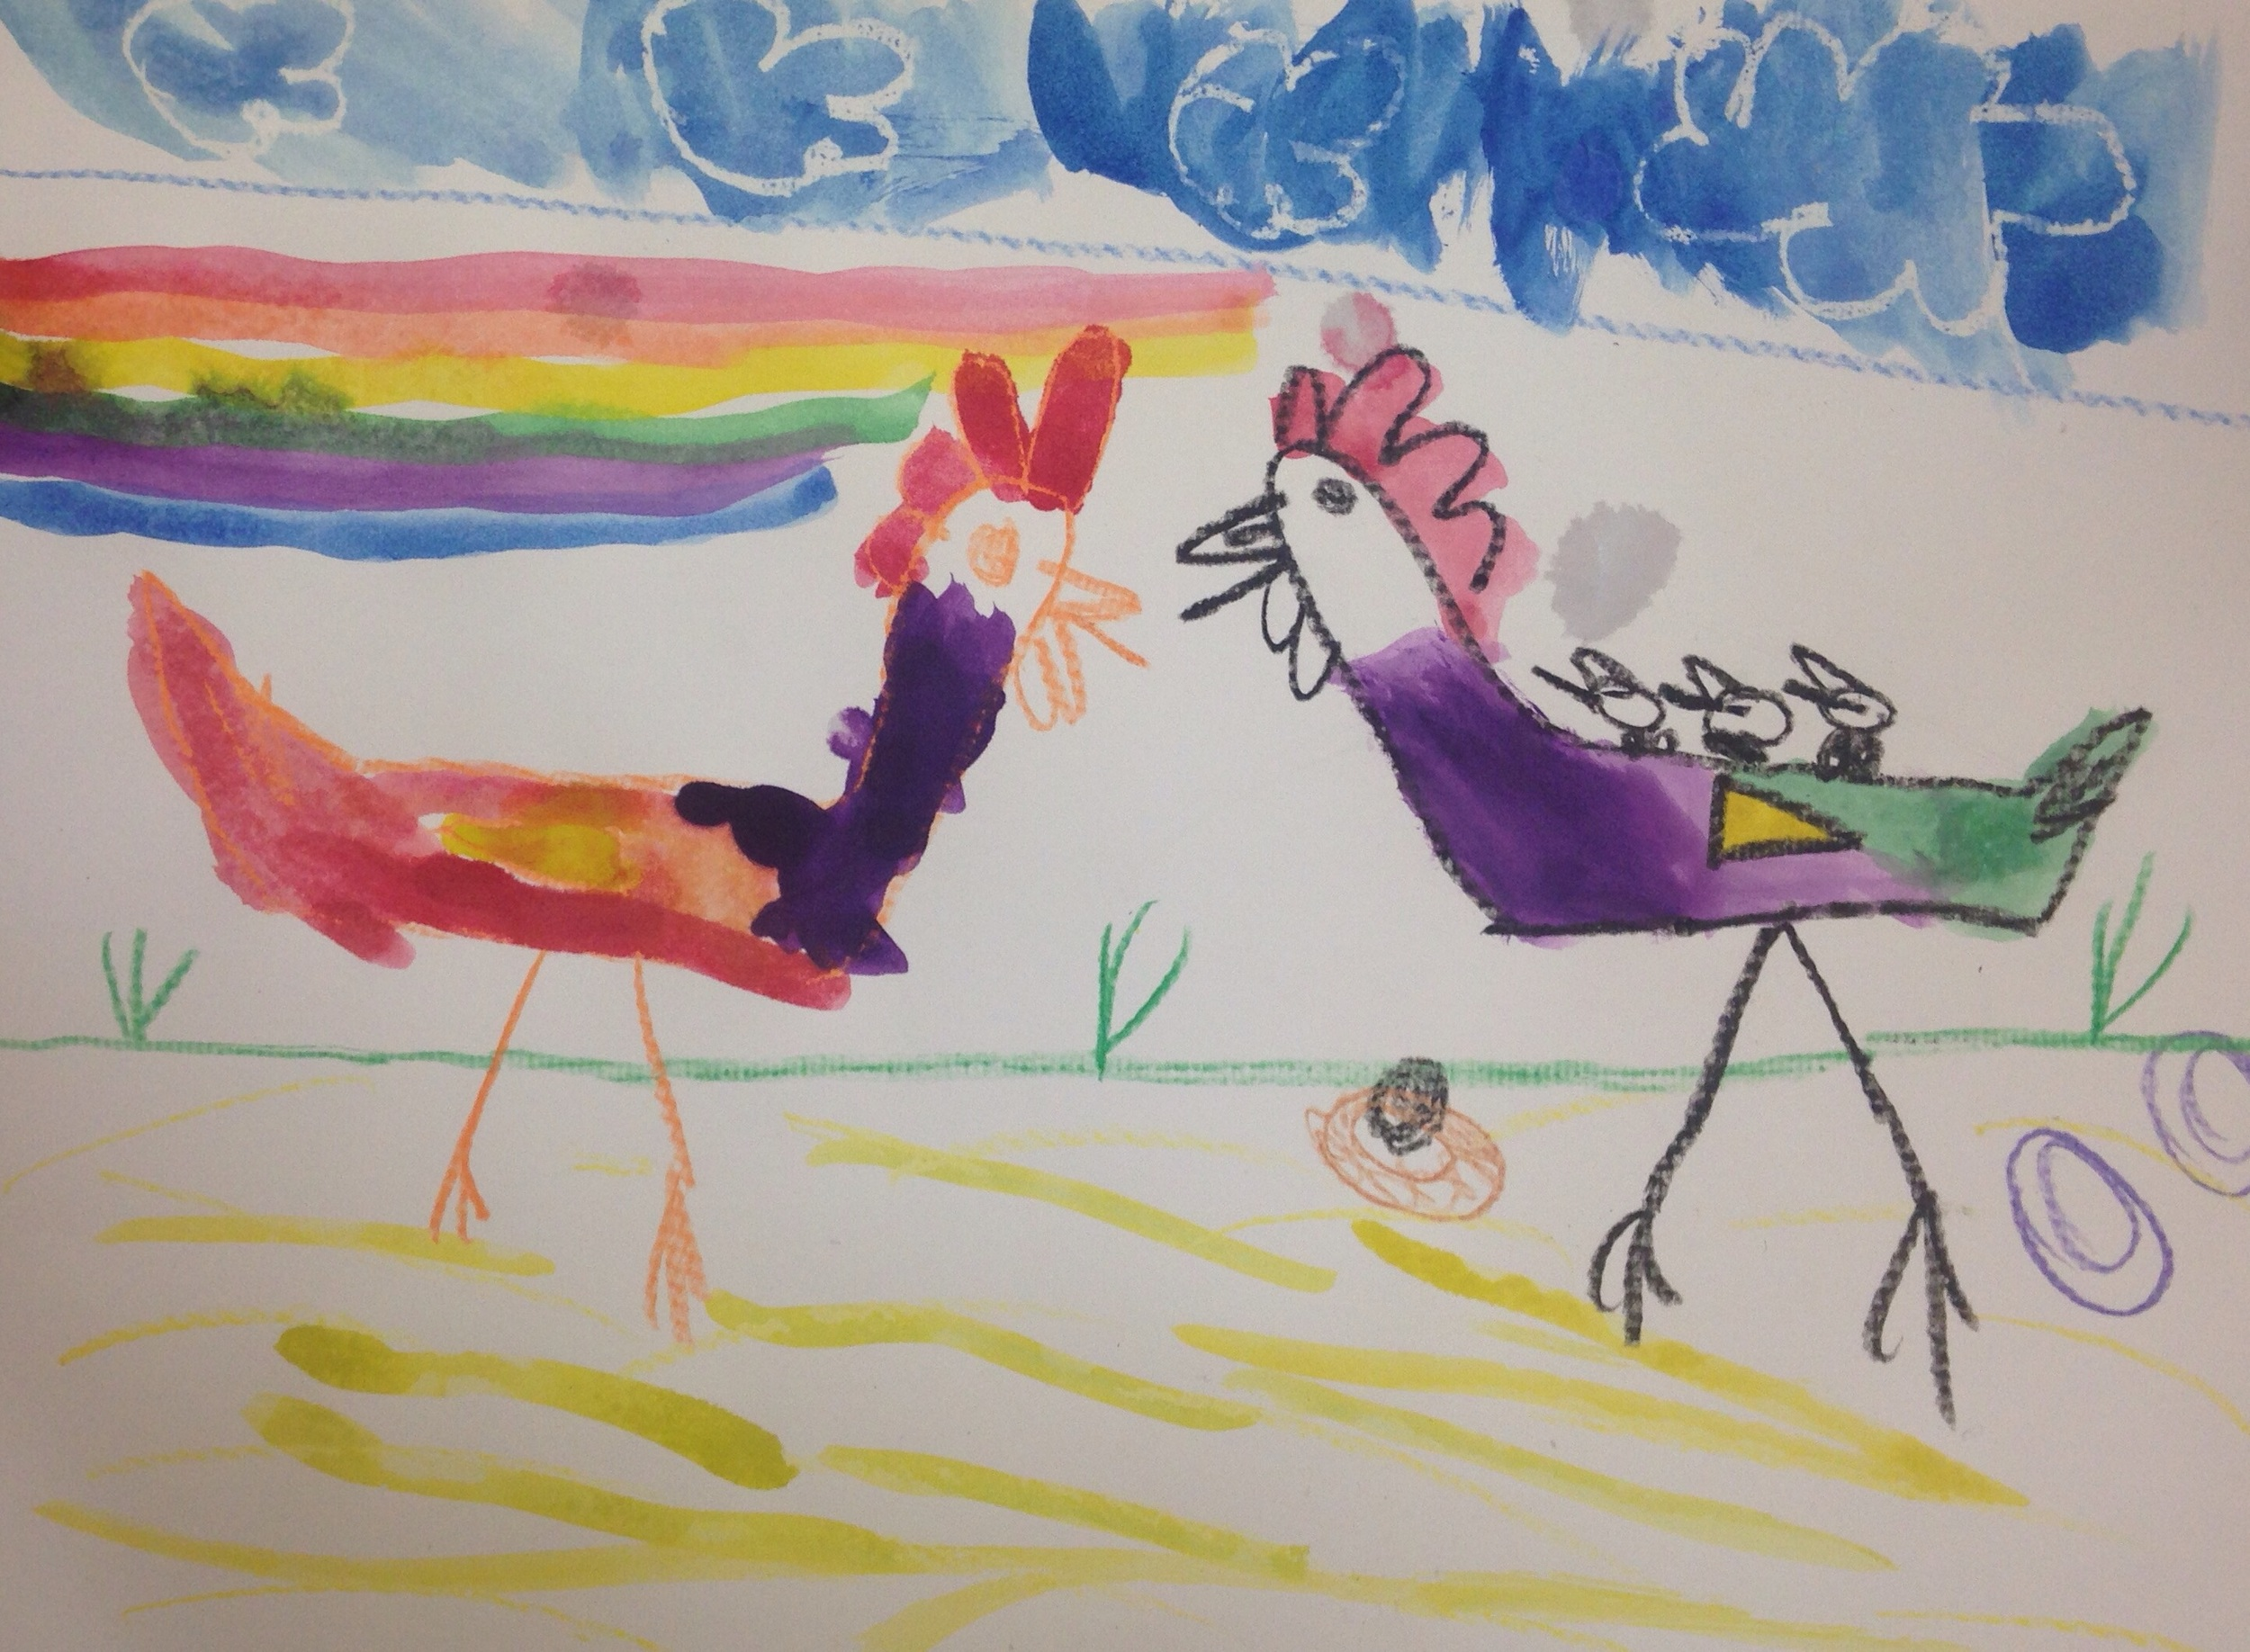 These chickens are somewhere over the rainbow. One chicken is even carrying her chicks on her back!